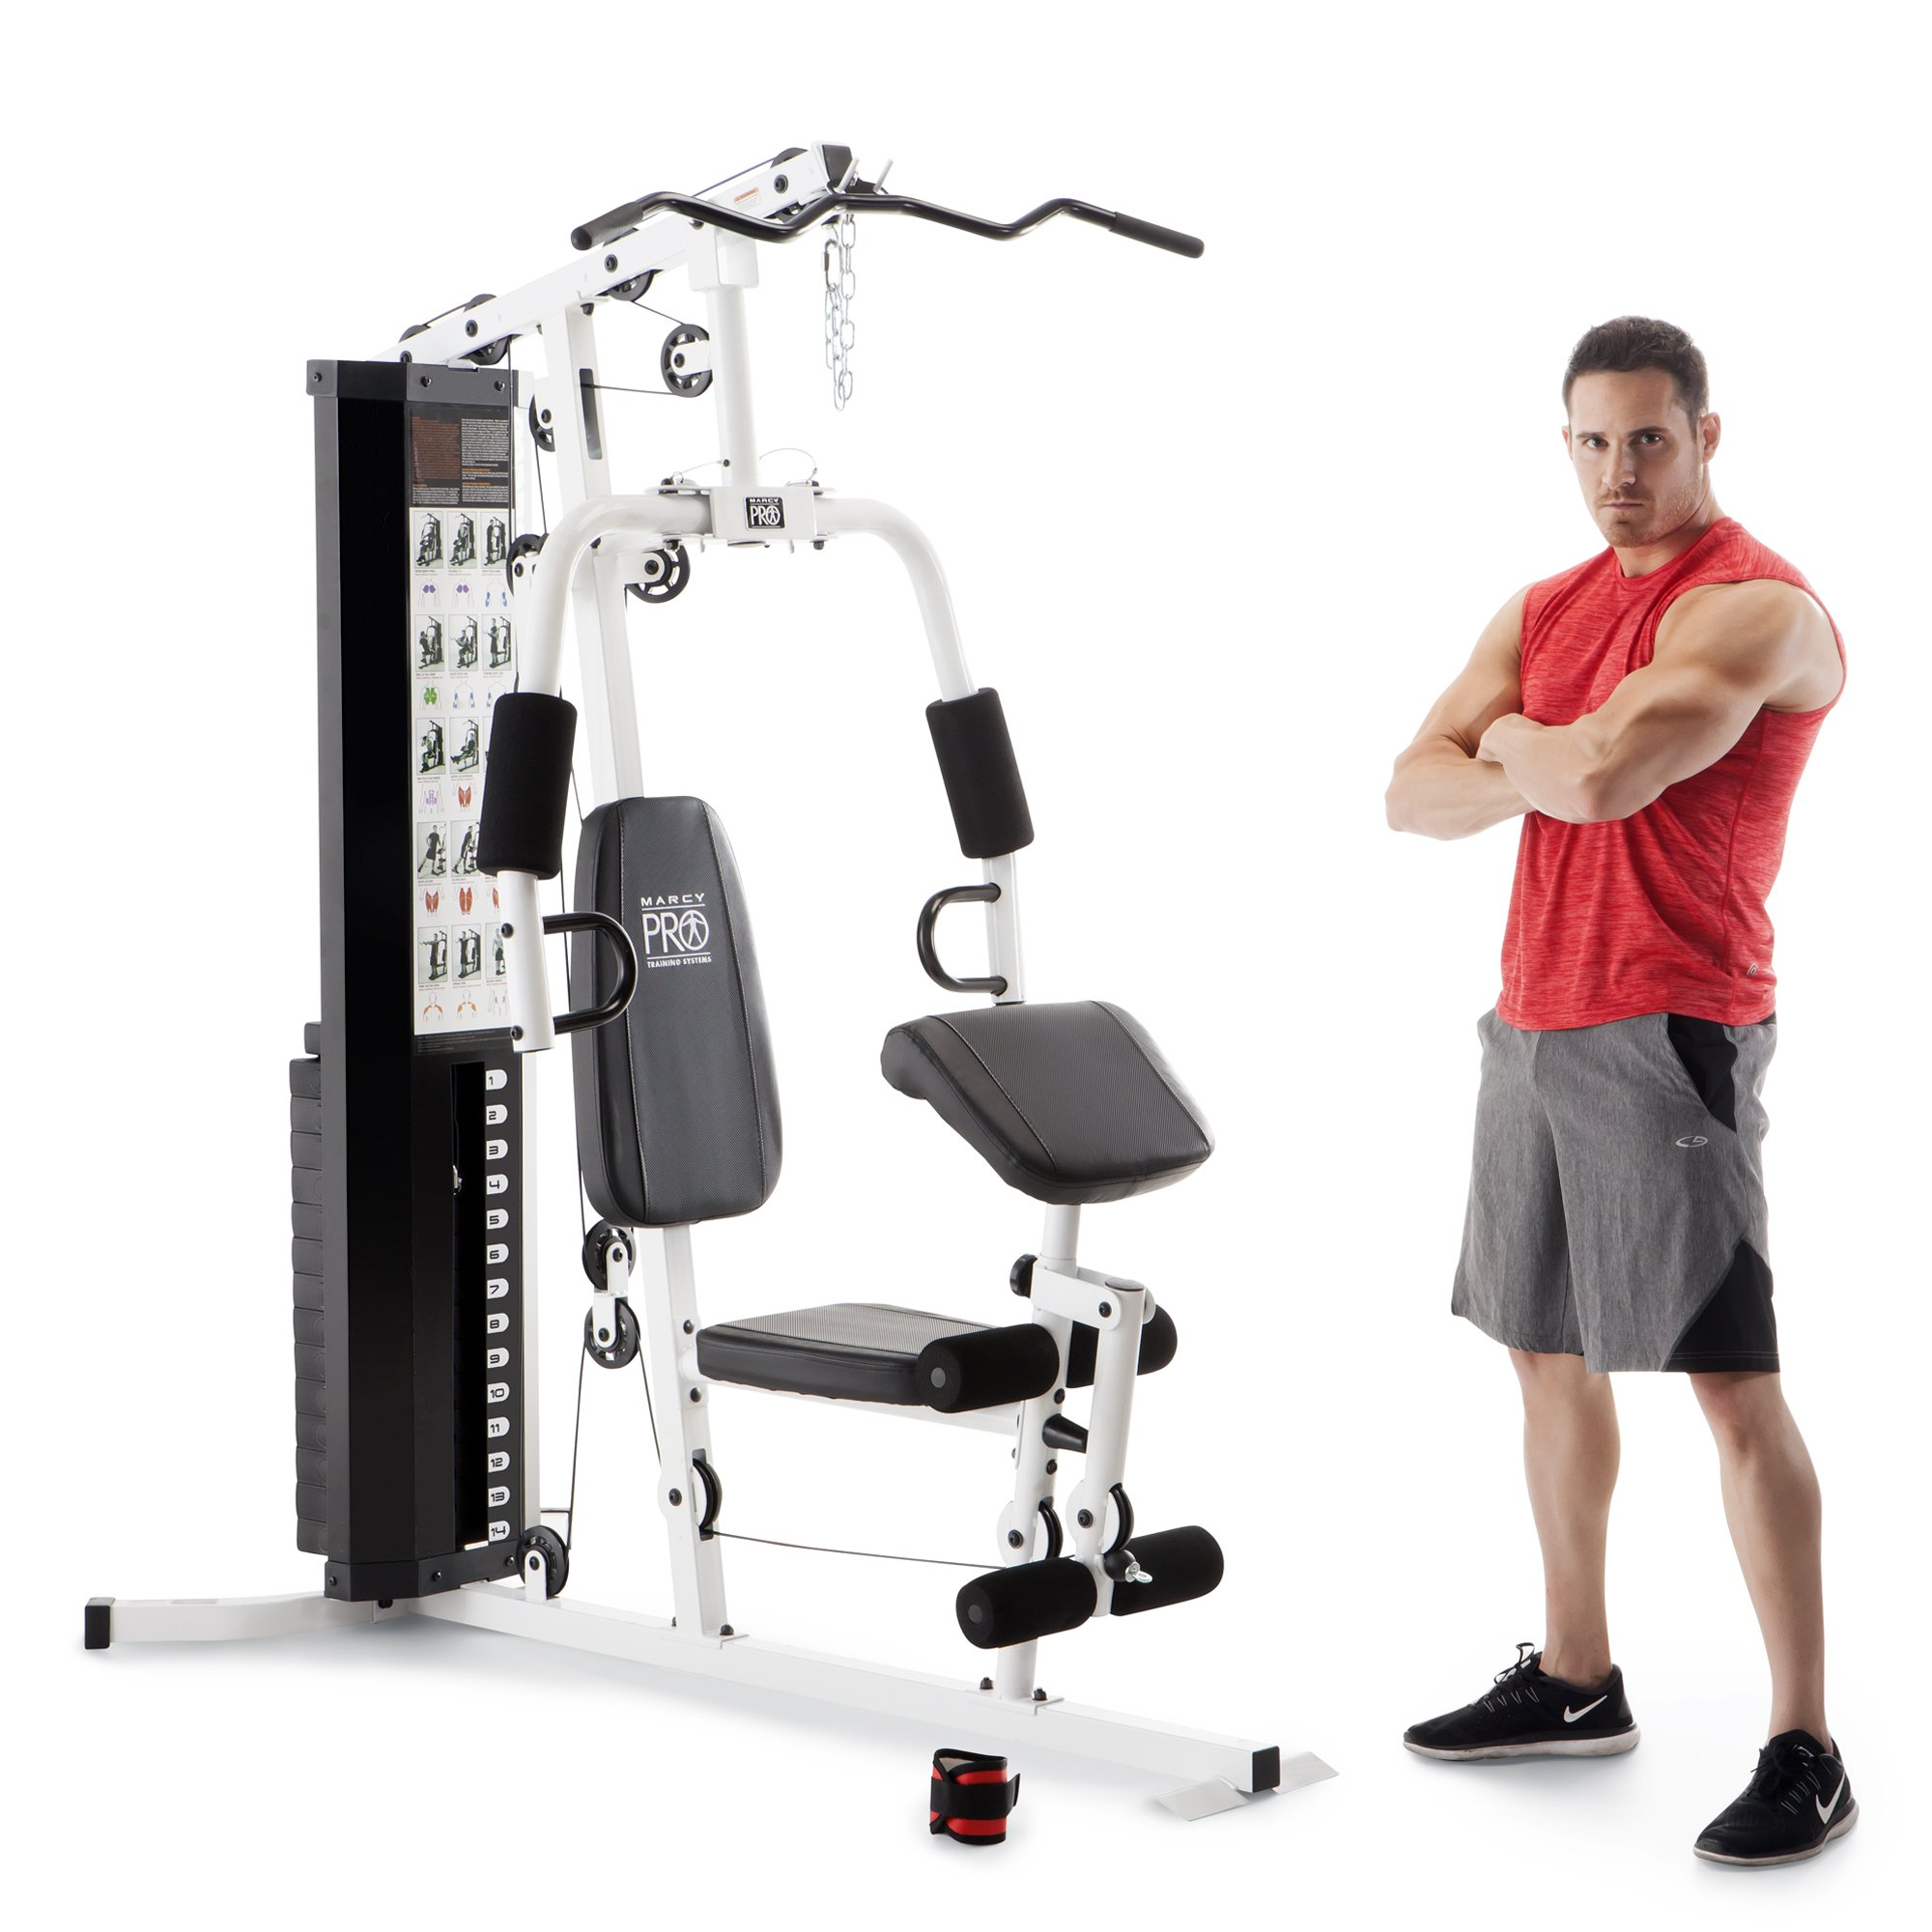 Marcy Dual-Functioning Upper Lower Body Fitness Workout 150-Pound Stack Home Gym